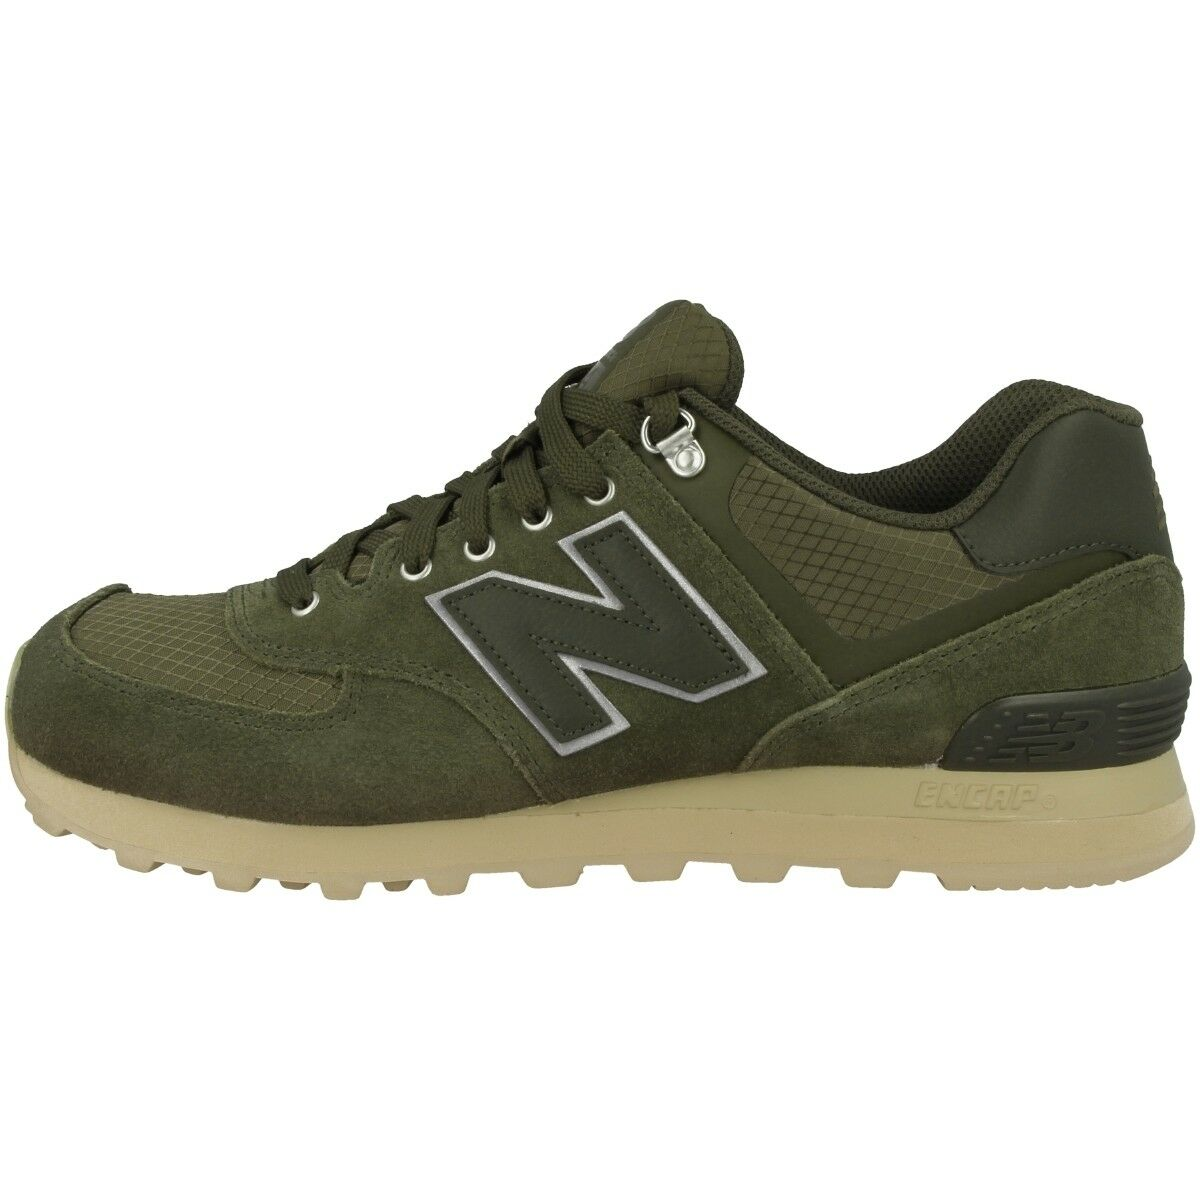 Zapatos promocionales para hombres y mujeres New Balance ML 574 PKT Schuhe ML574PKT Sneaker olive sand 410 420 576 754 373